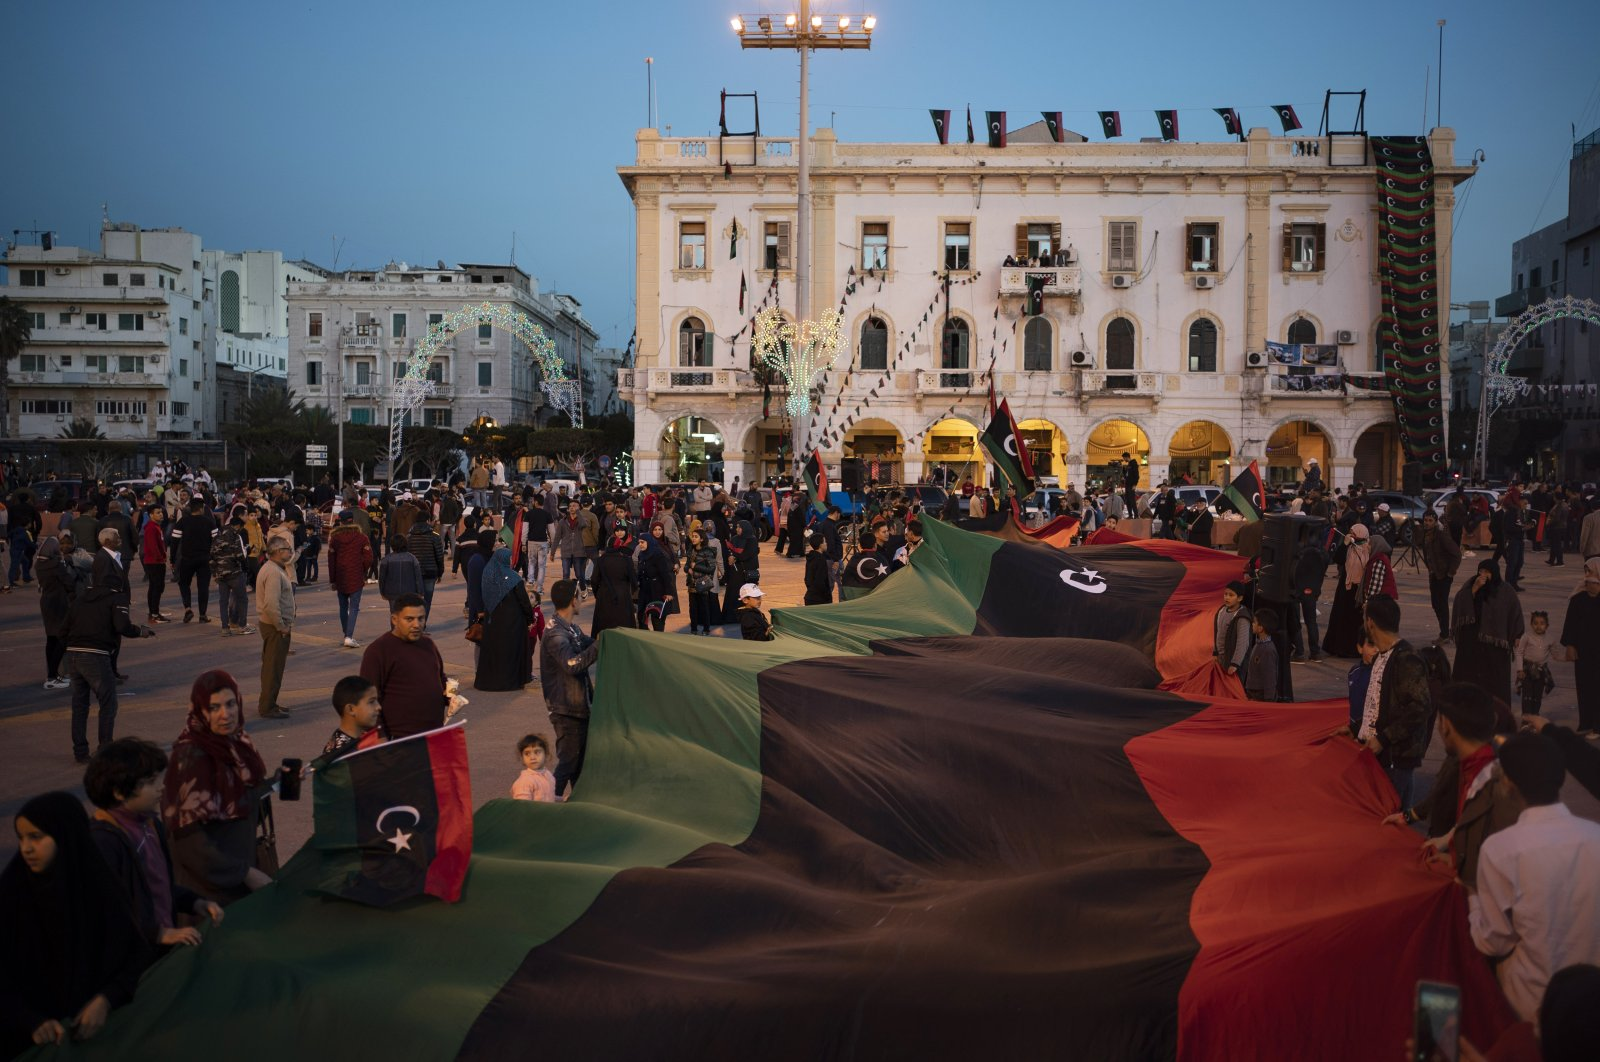 People carry a giant Libyan flag at the Martyrs square during a march commemorating the anniversary of anti-Gadhafi protests in Tripoli, Libya, Feb. 25, 2020. (AP Photo)